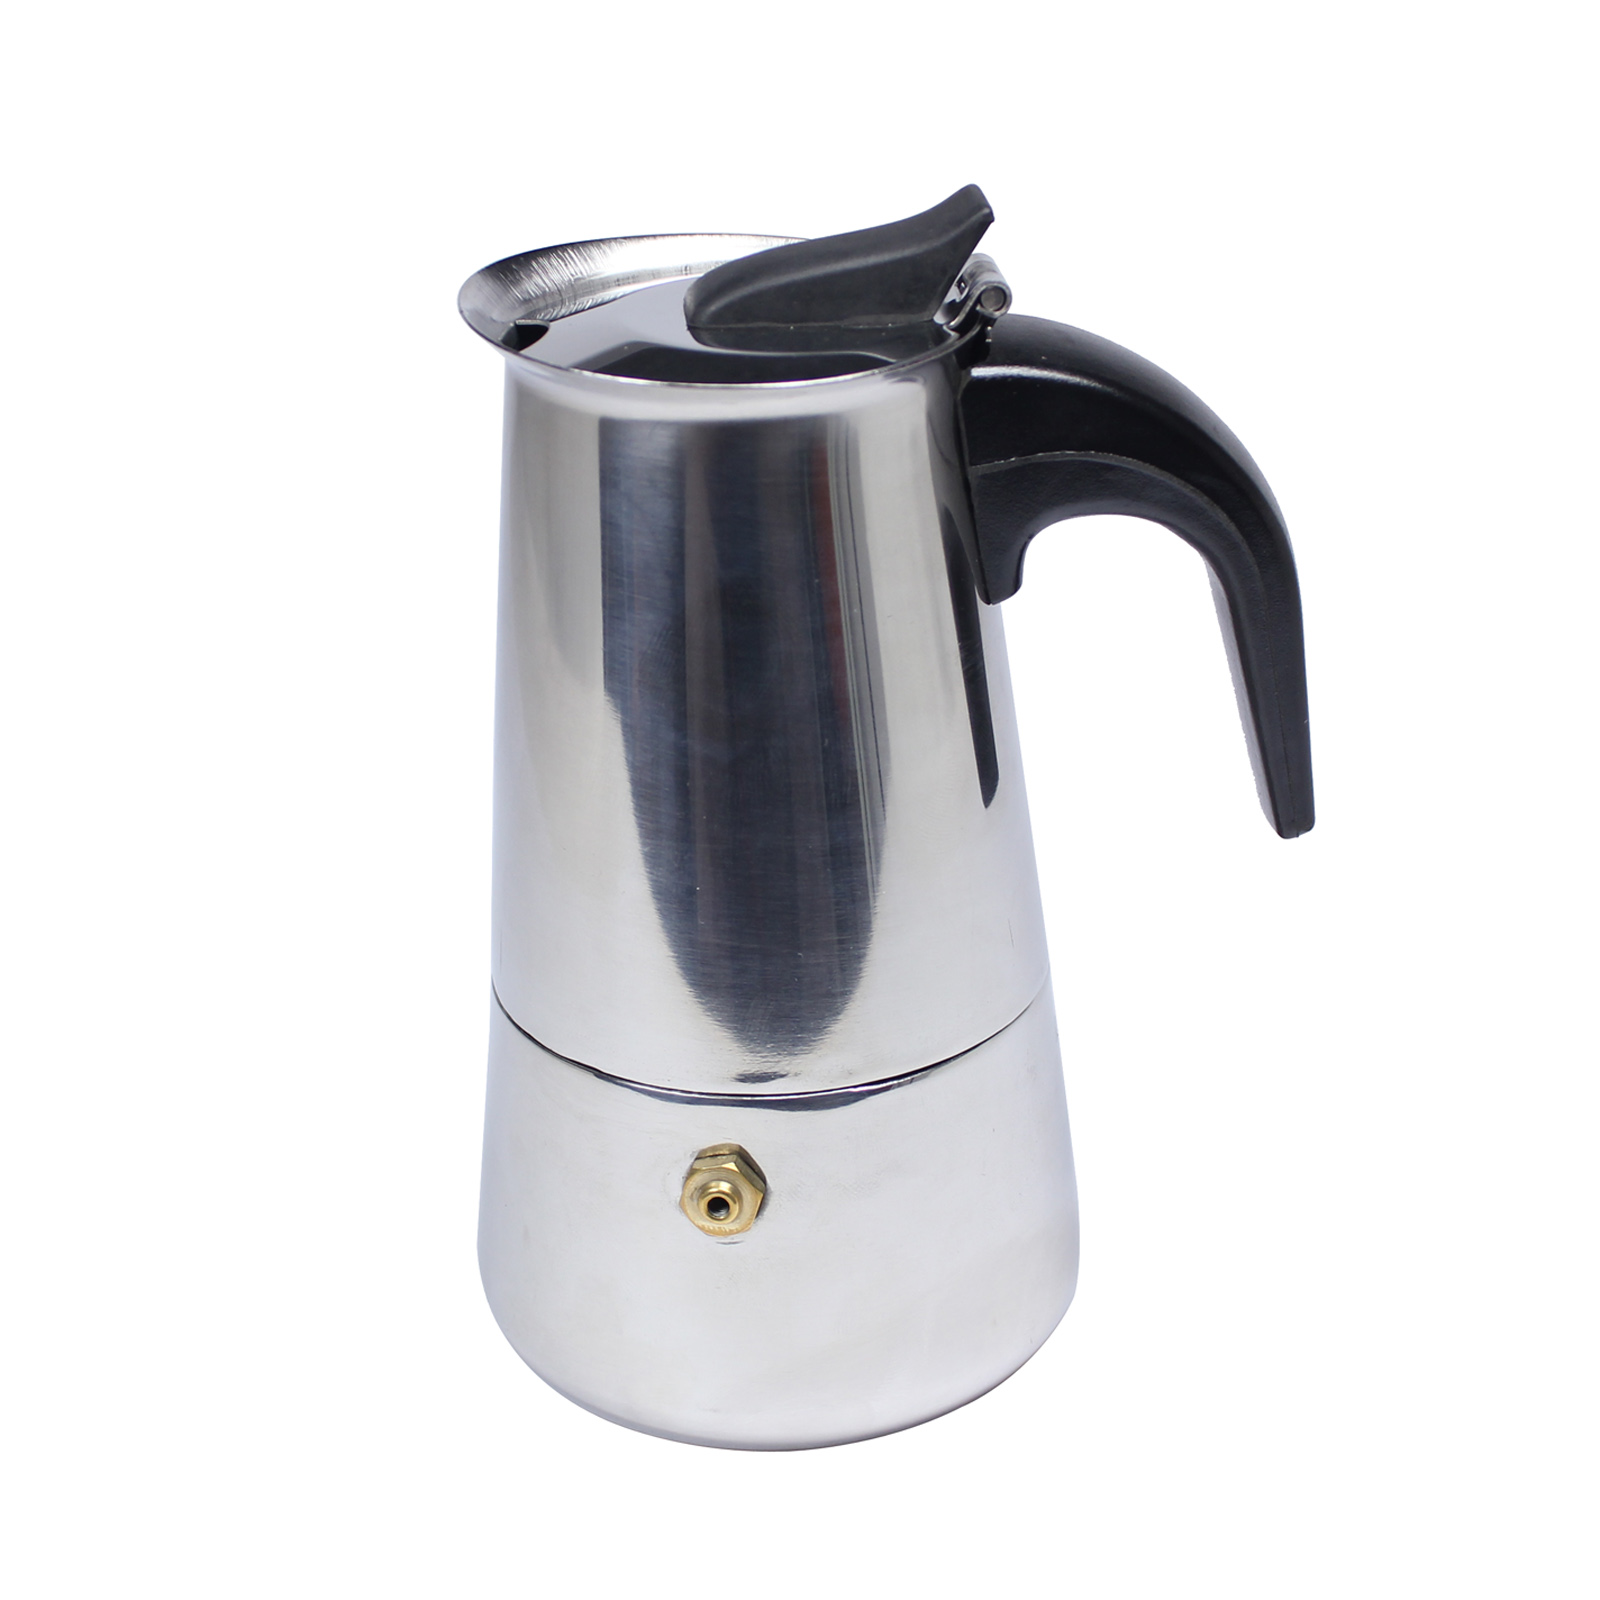 Italian Coffee Maker Best Coffee : 300ml Italian Espresso Coffee Maker Stainless Steel Moka Pot HJ360C eBay